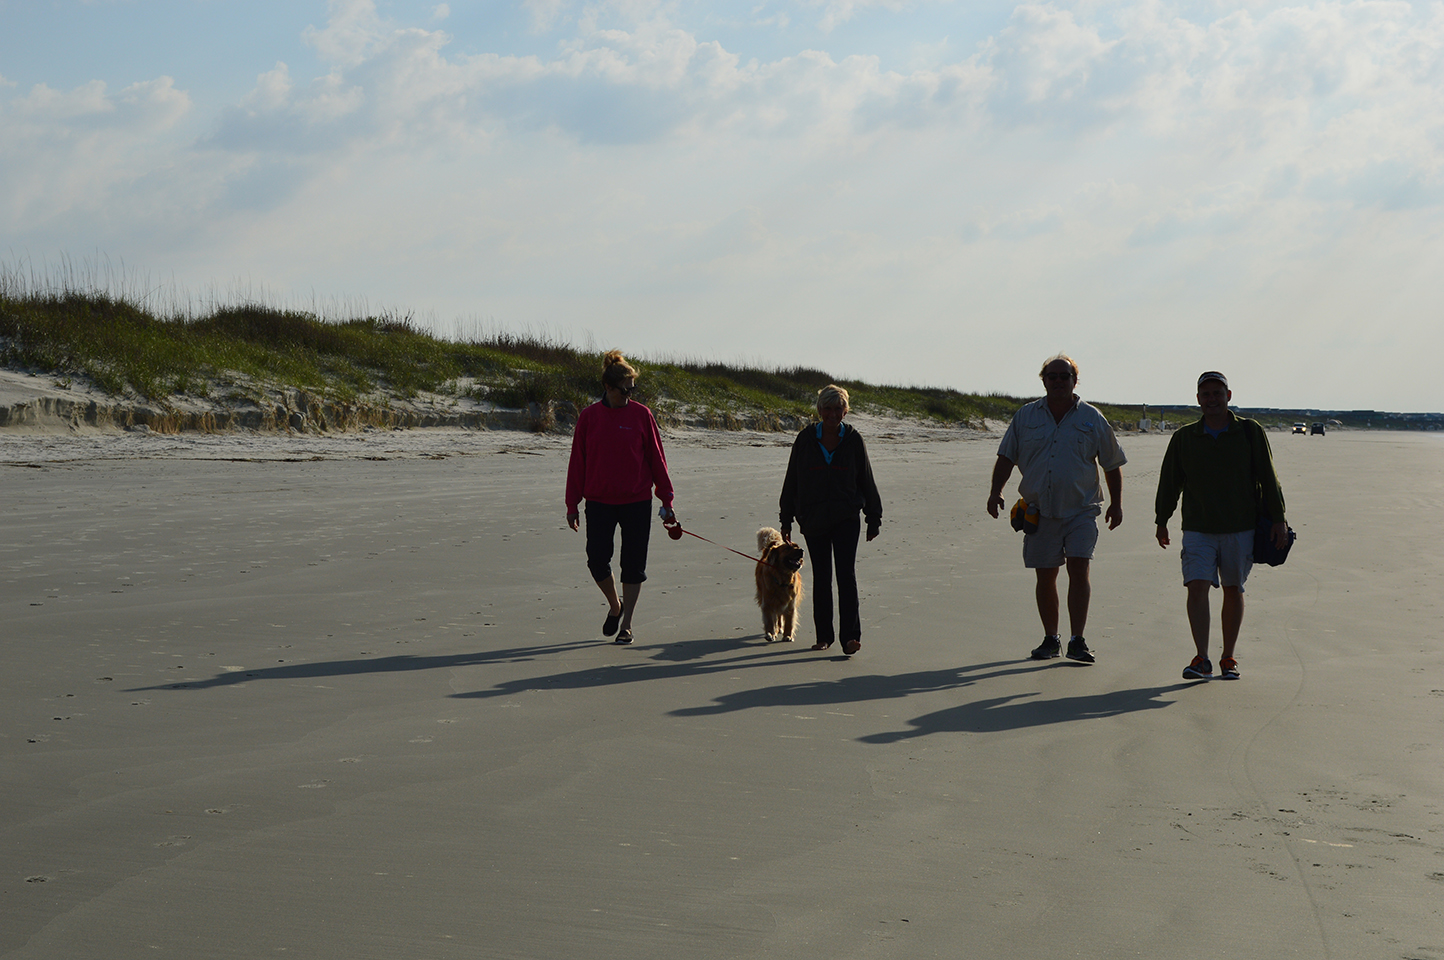 The Crew Walking Down